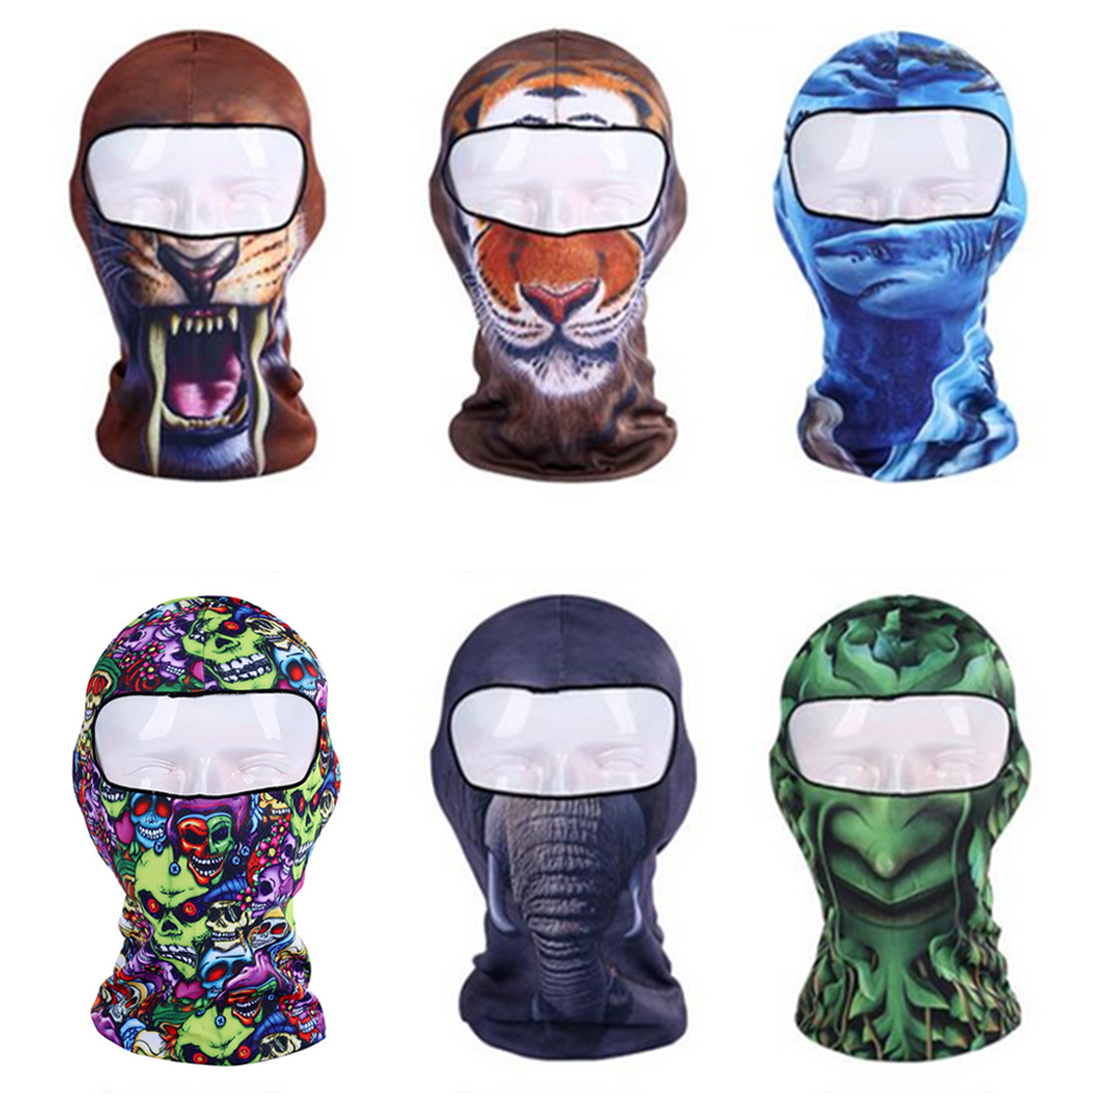 Womens Dustproof Warm Cycling Face Mask Windproof Fleece Bike Bicycle Riding Mask Ski Snowboard Outdoor Masks Modern And Elegant In Fashion Fitness & Body Building Yoga Mats